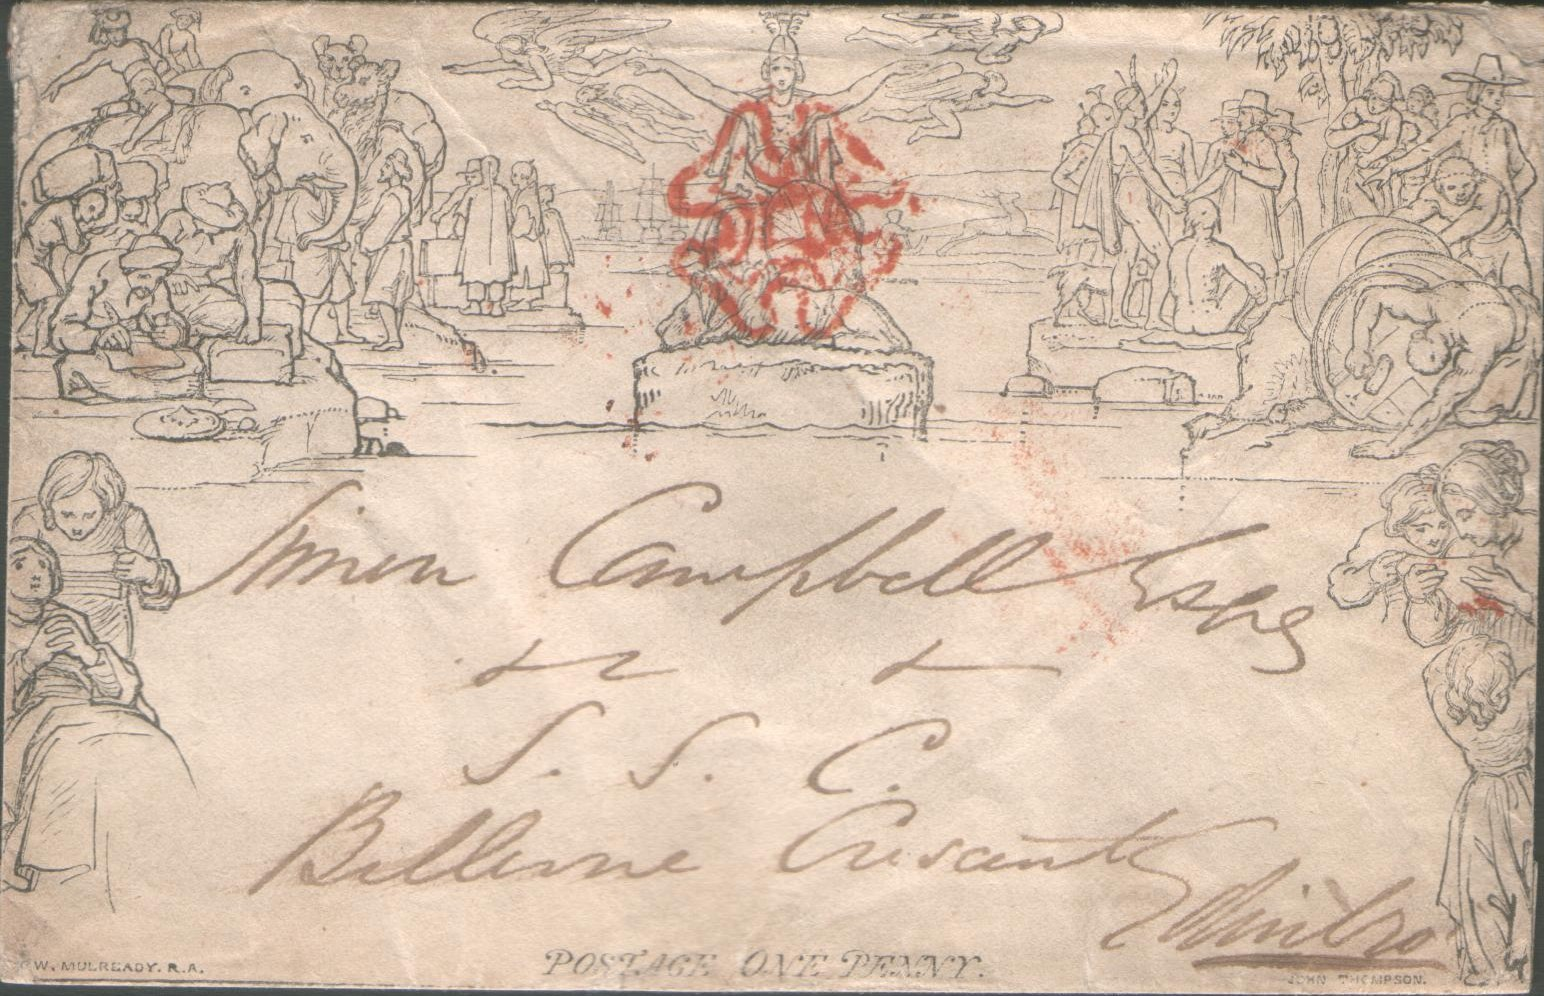 A 1-penny Mulready envelope sent from Hamilton, England on November 2, 1840, with a red Maltese cross cancellation.